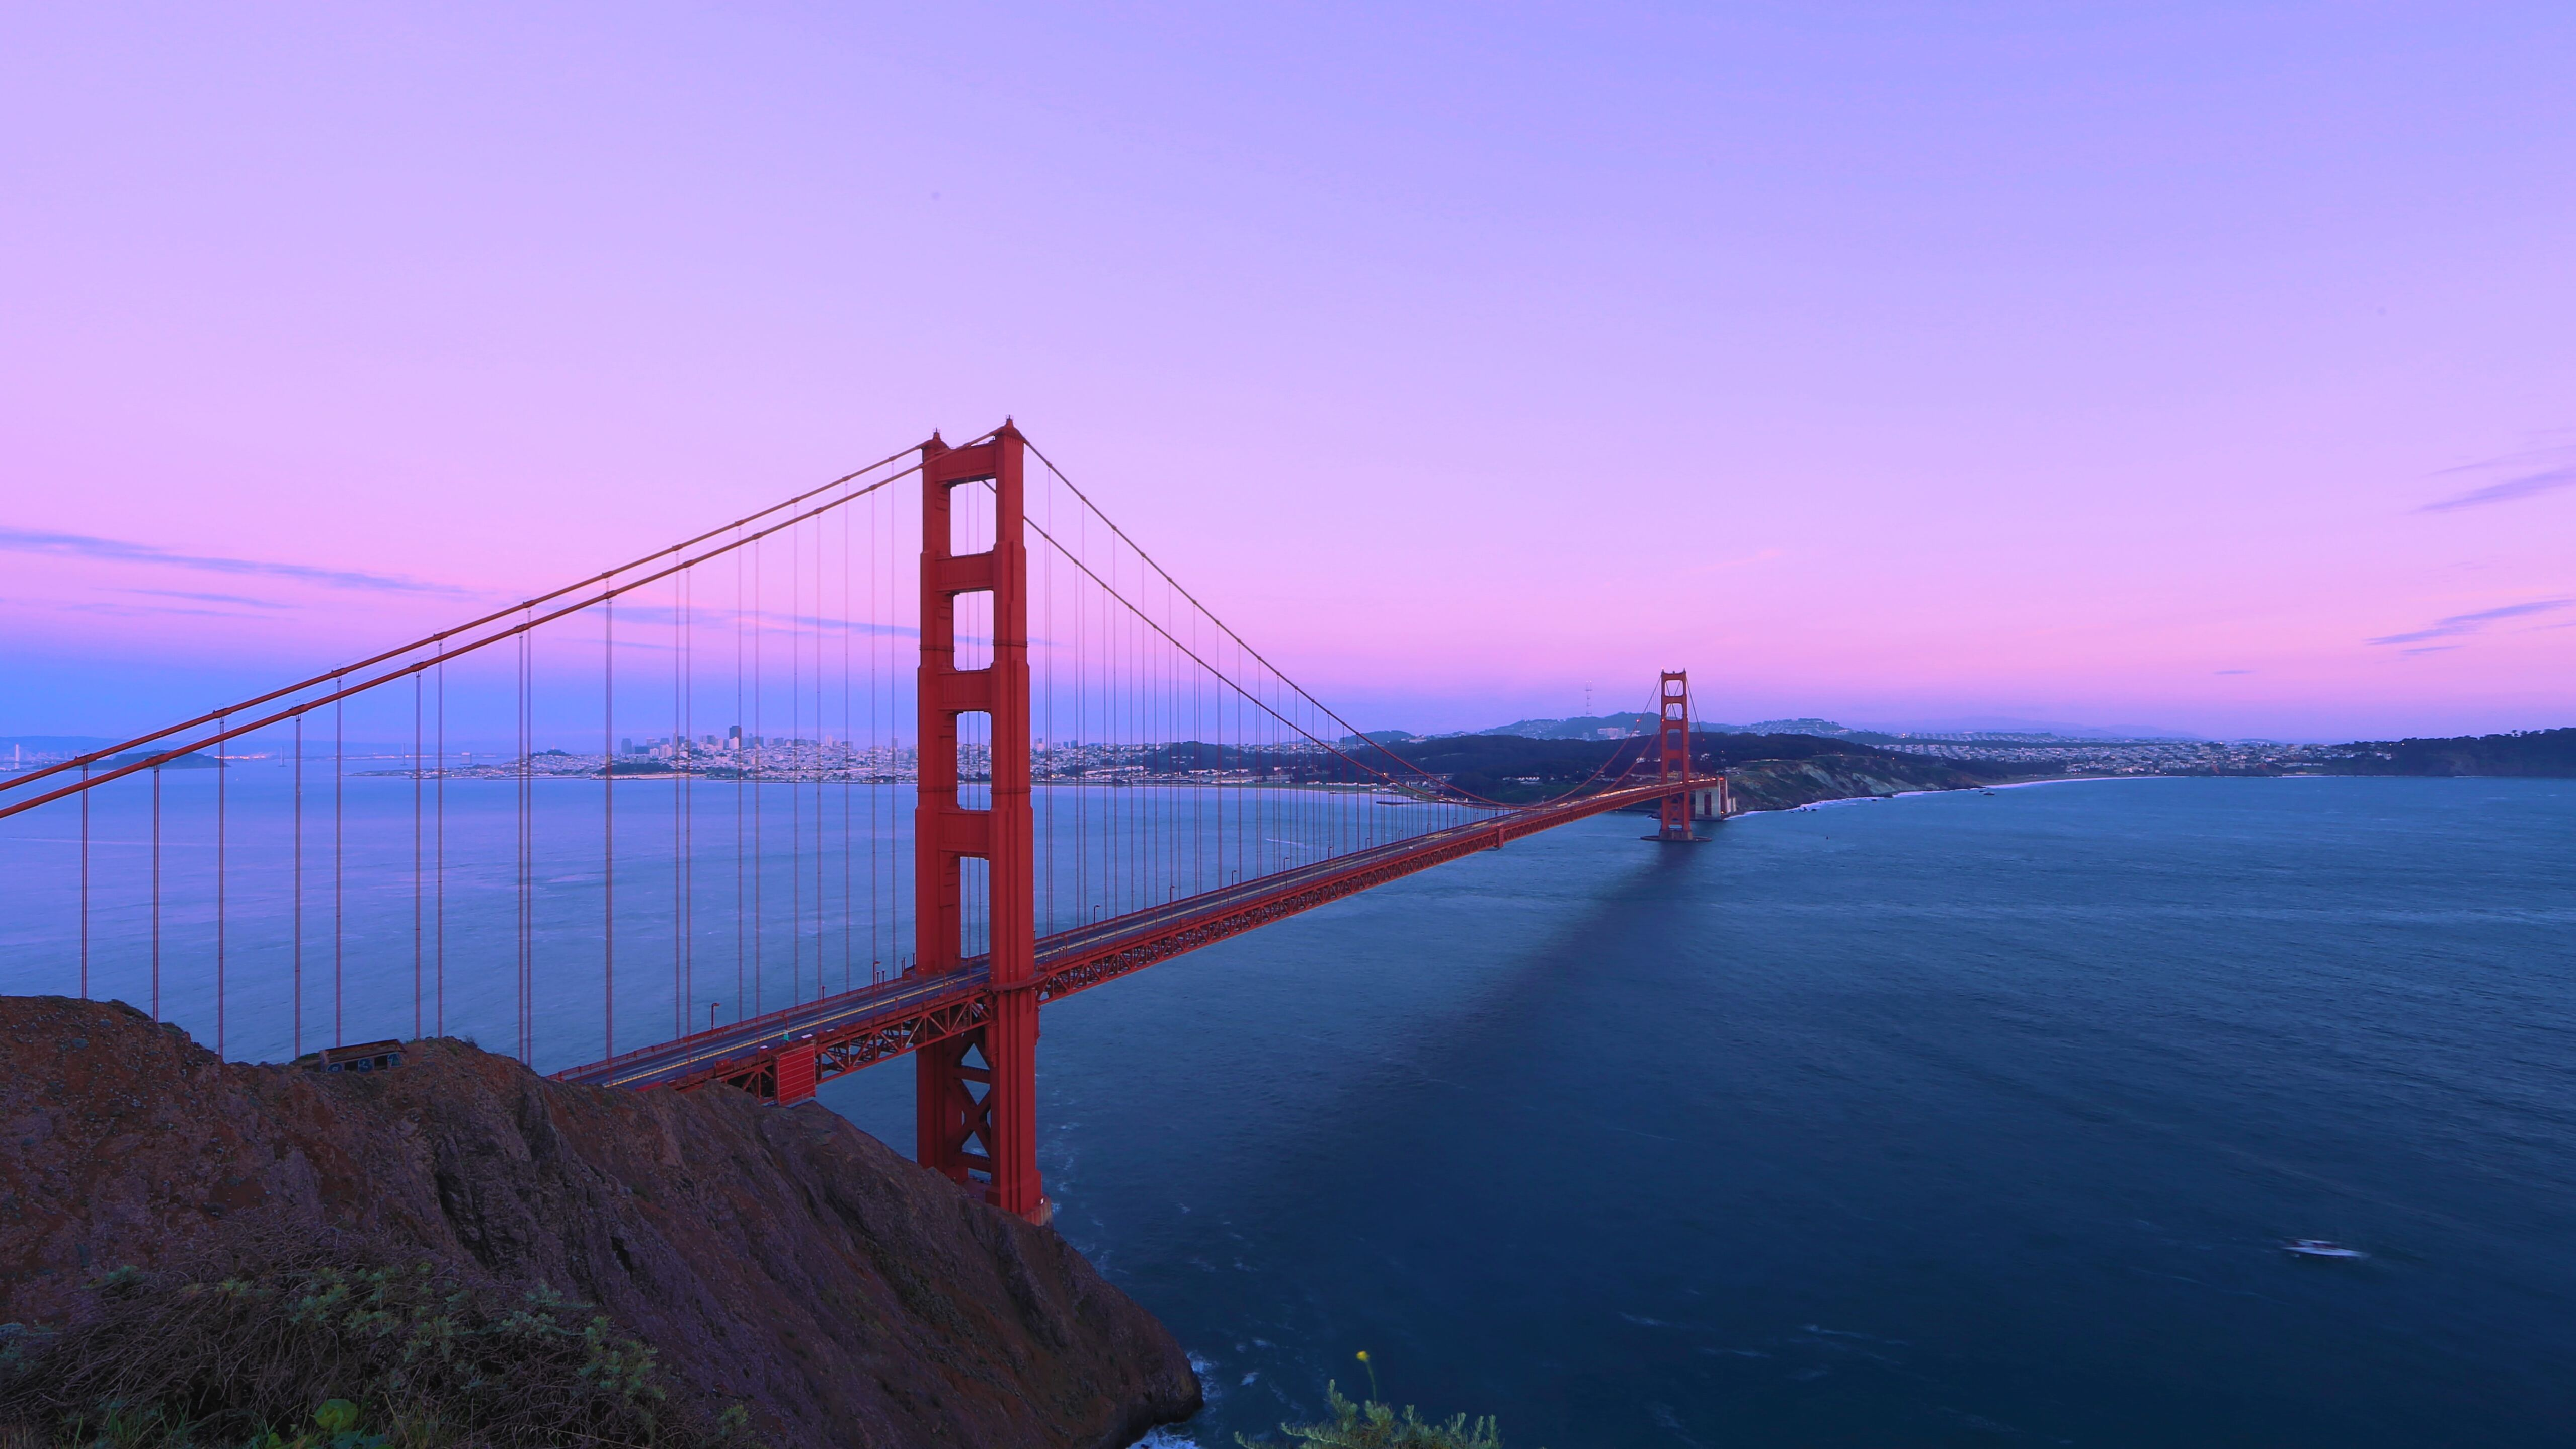 5120x2880 Golden Gate Bridge San Francisco 5k 5k Hd 4k Wallpapers Images Backgrounds Photos And Pictures